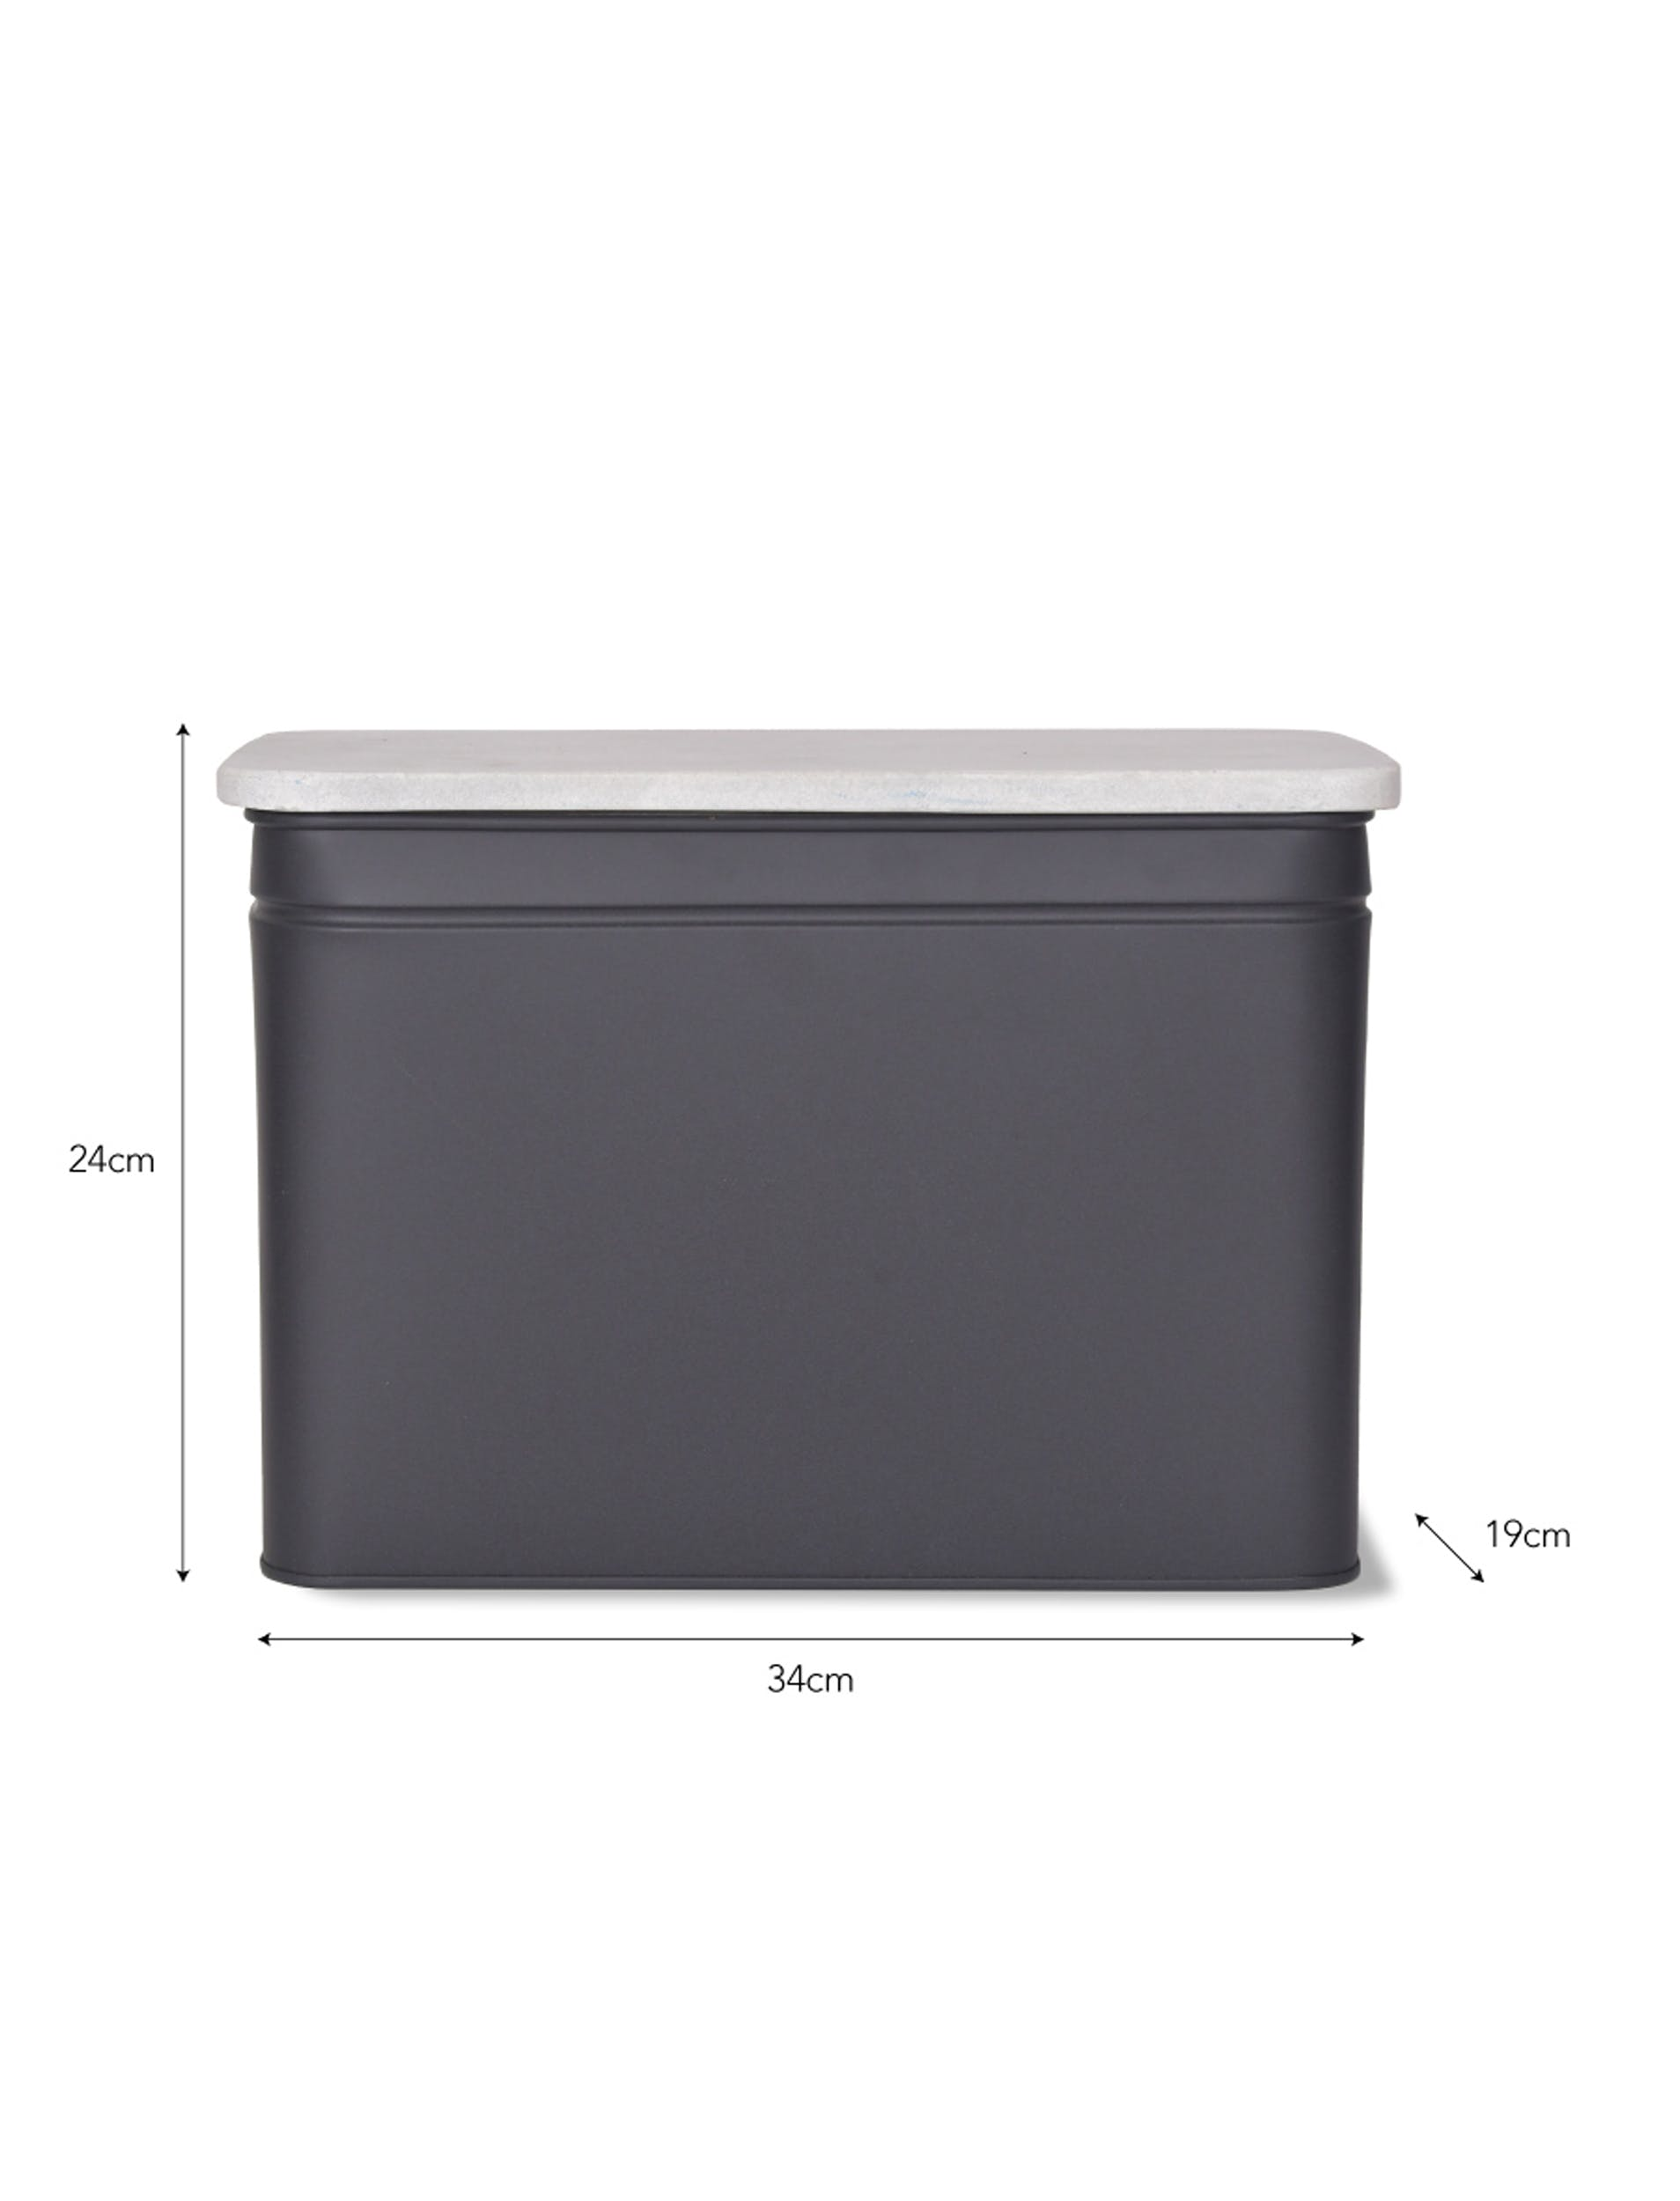 Marble and Steel Brompton Bread Bin in Black or White | Garden Trading